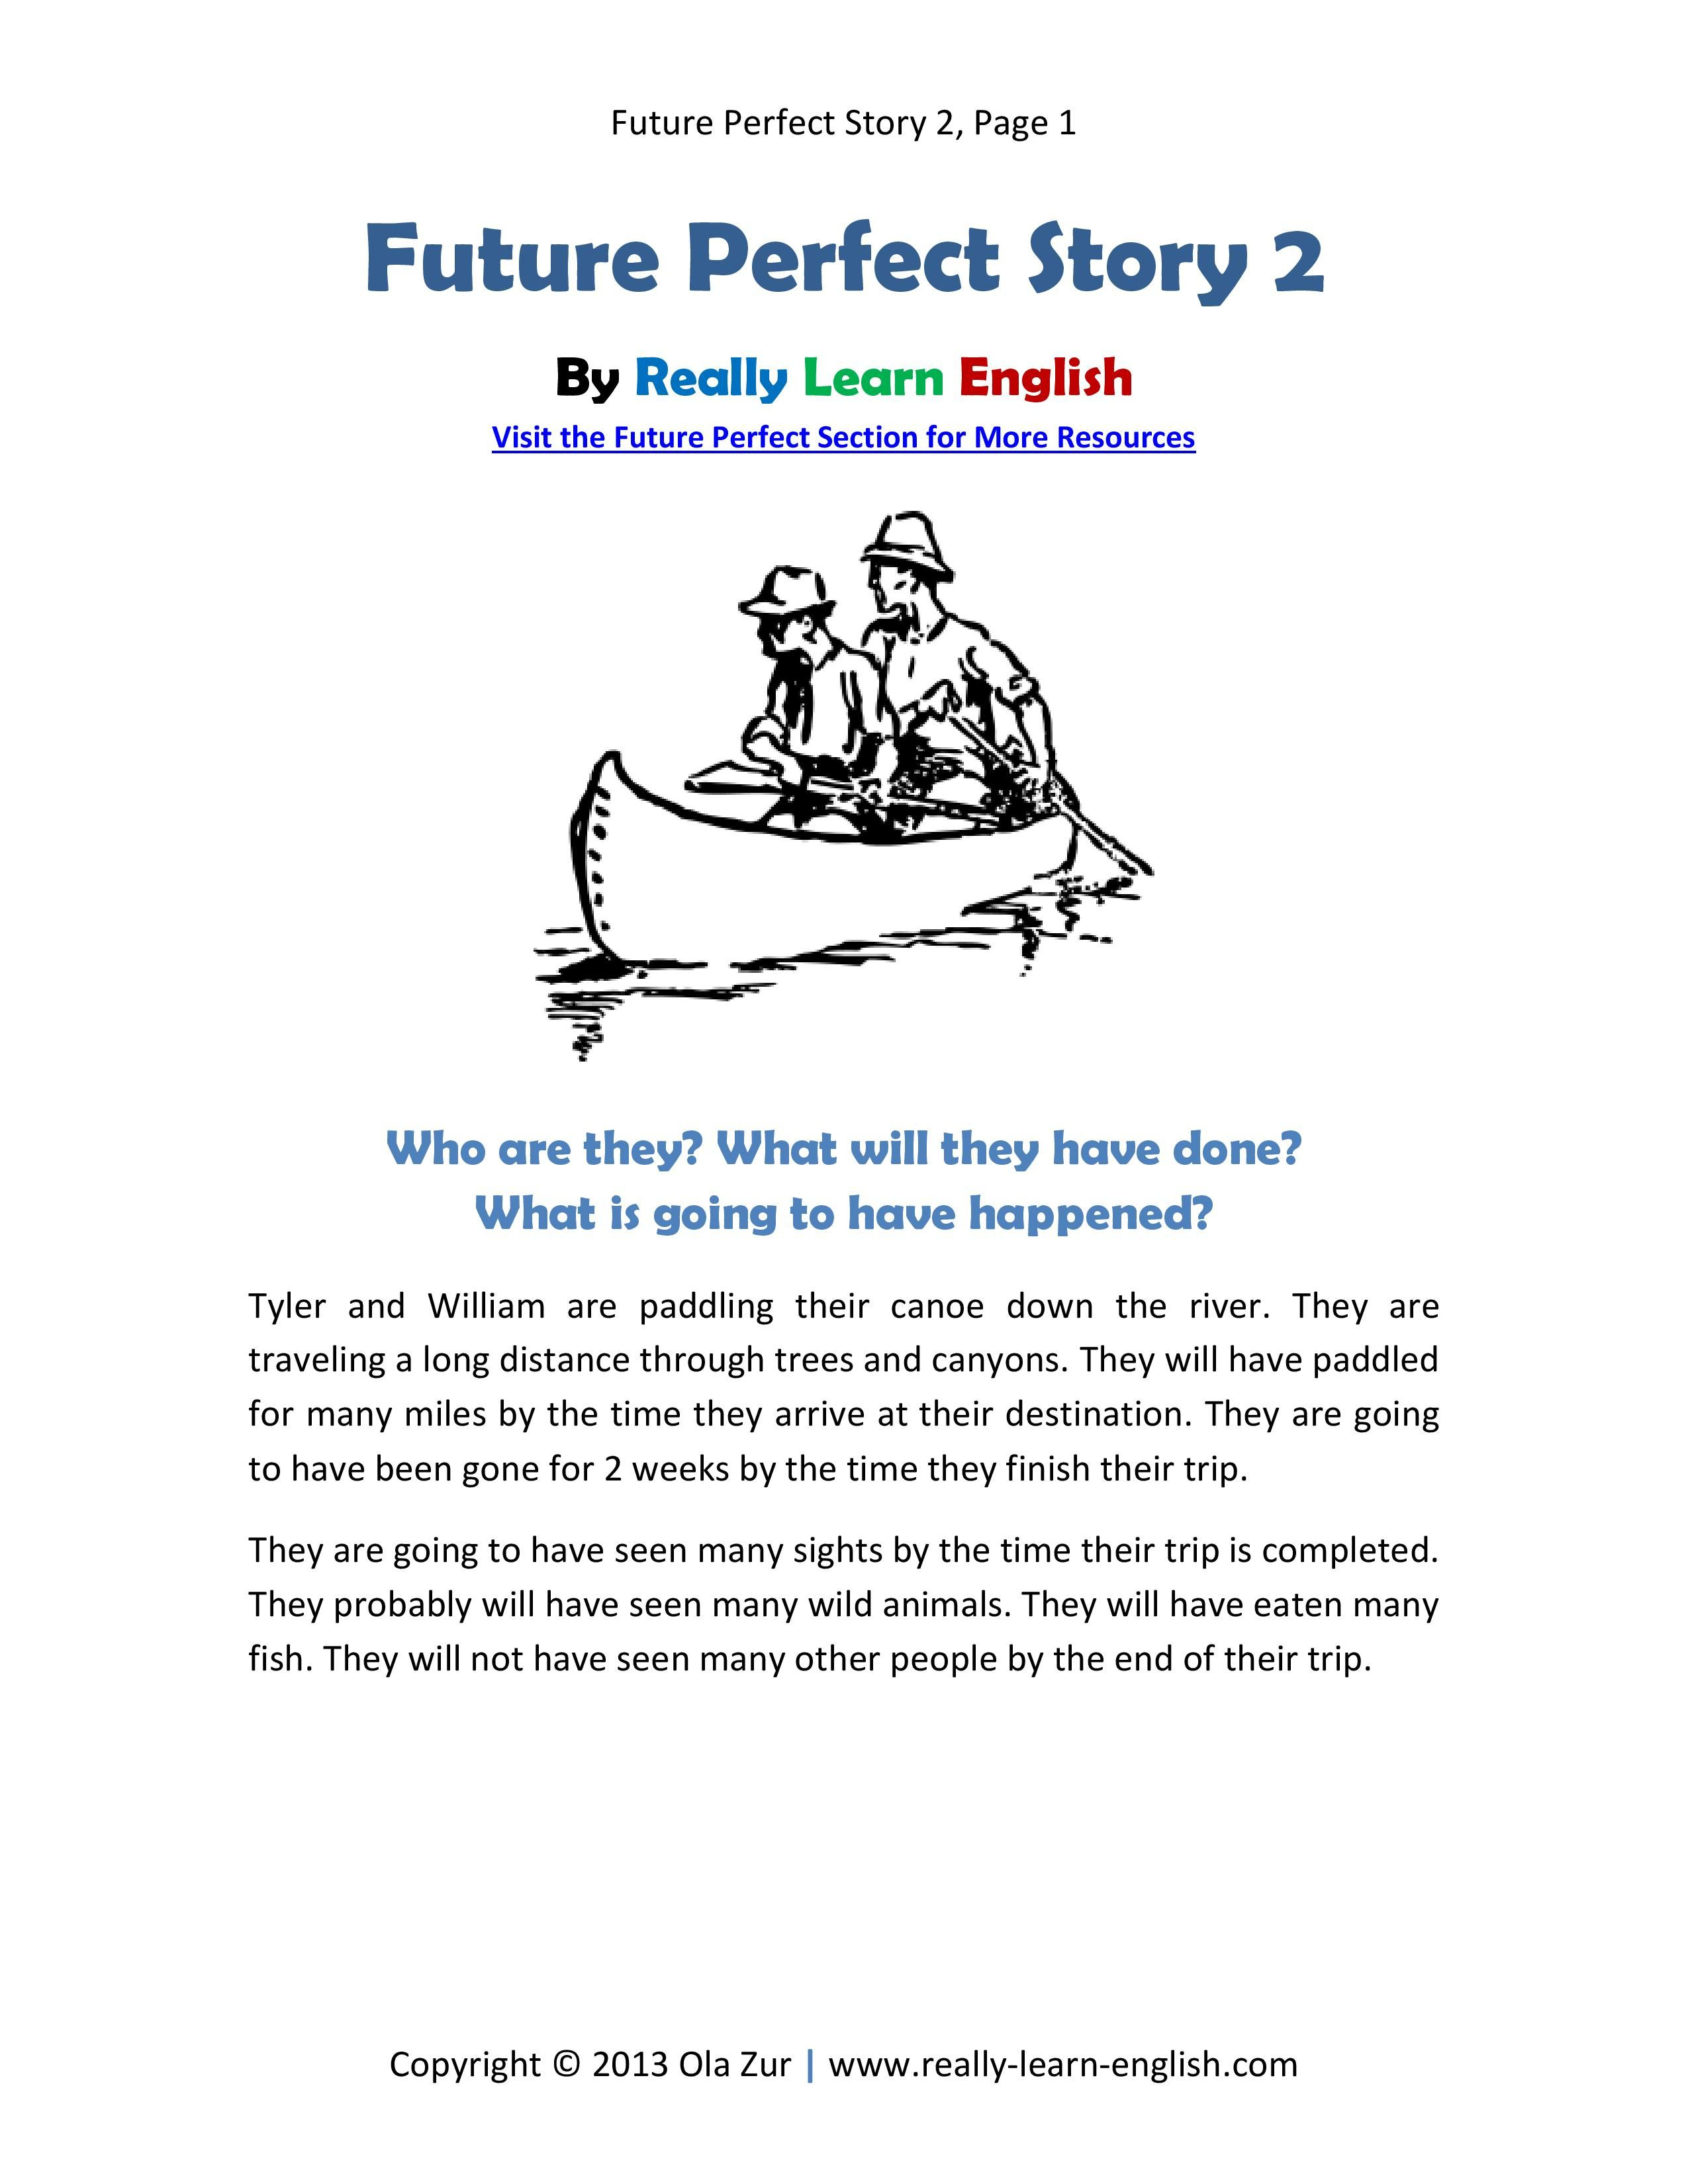 Printable Short Story And Worksheets To Practice The English Future - Free Printable Short Stories For High School Students